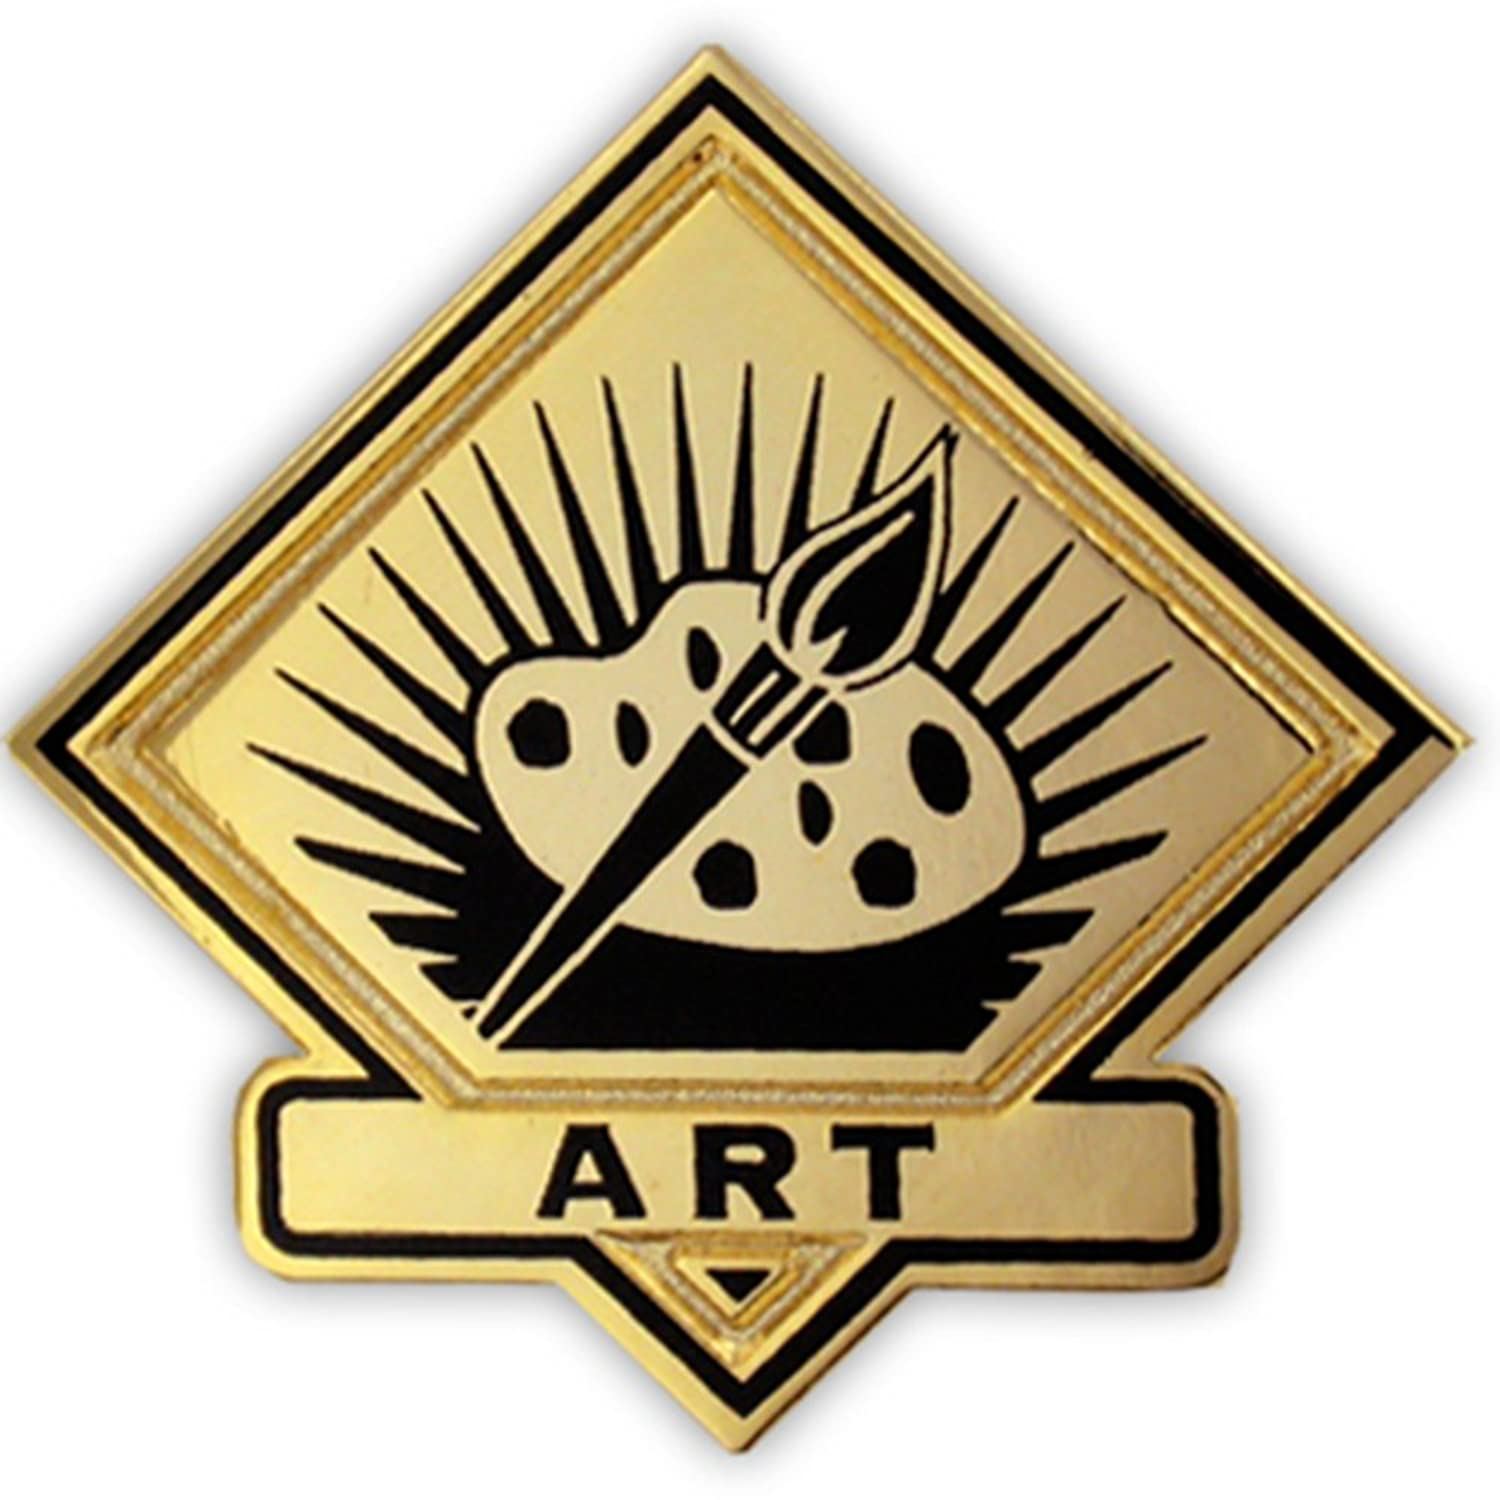 PinMart's Black and Gold Art Student School Teacher Lapel Pin for cheap